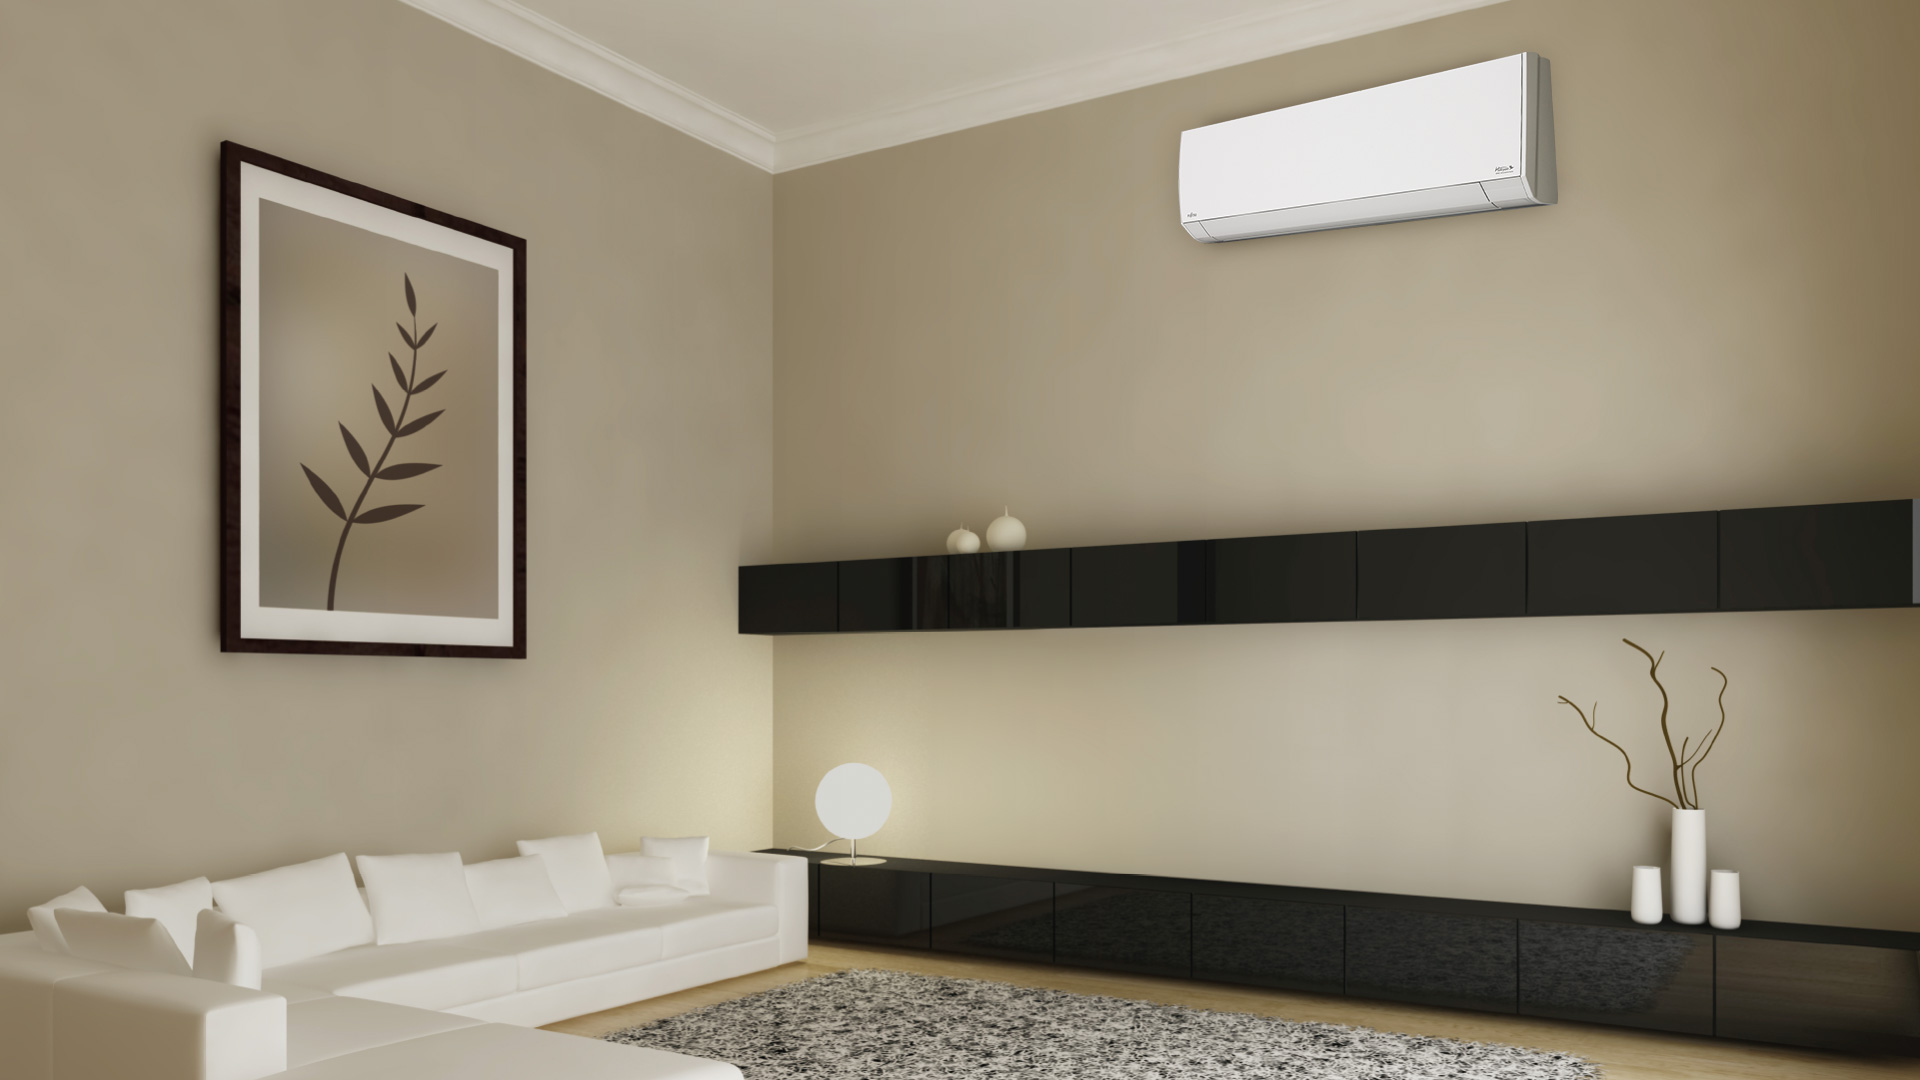 Halcyon single room mini split systems air conditioner for Split wall